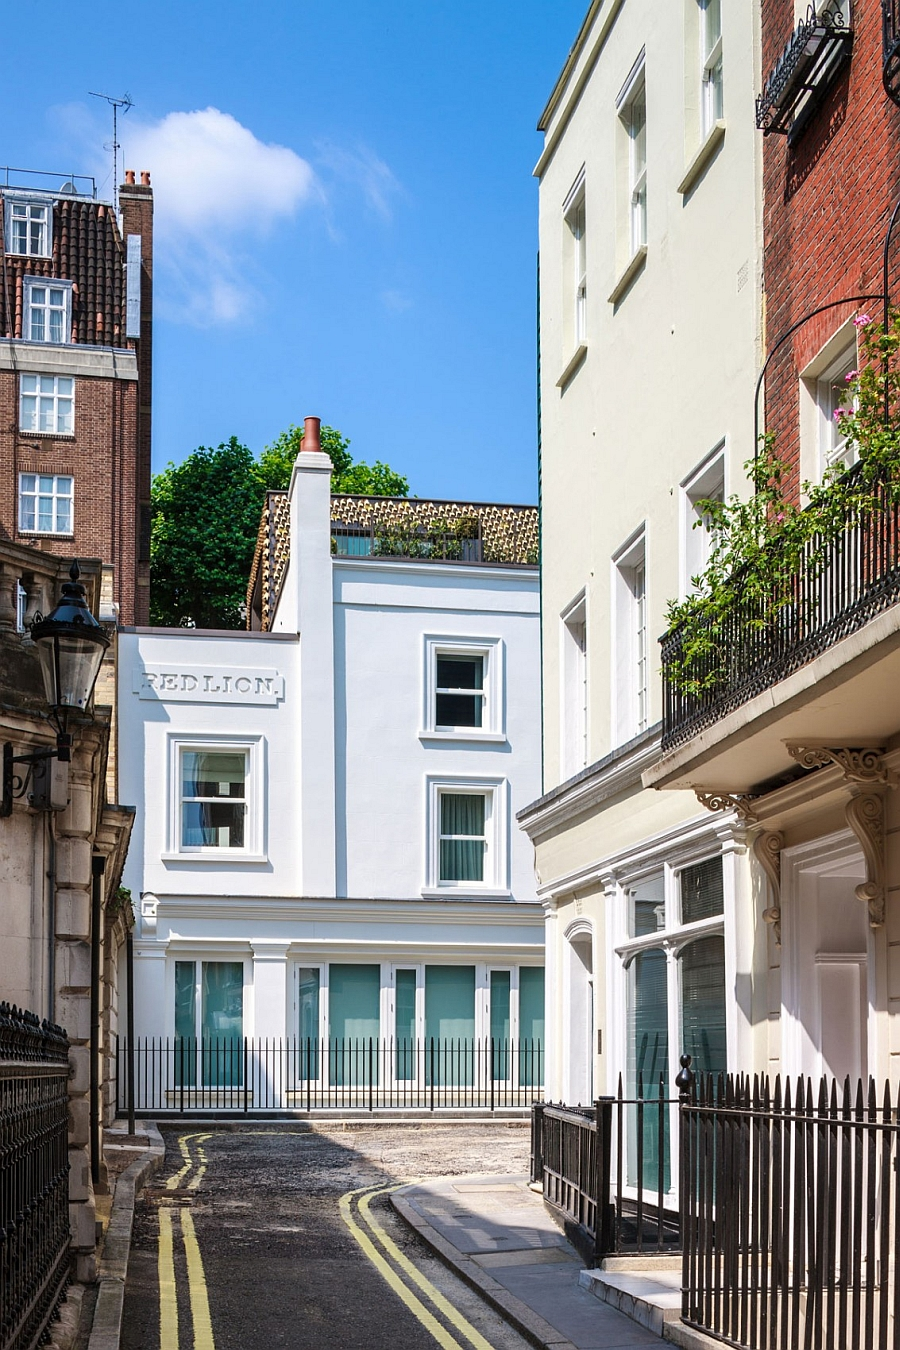 Mayfair House in Waverton Street, London